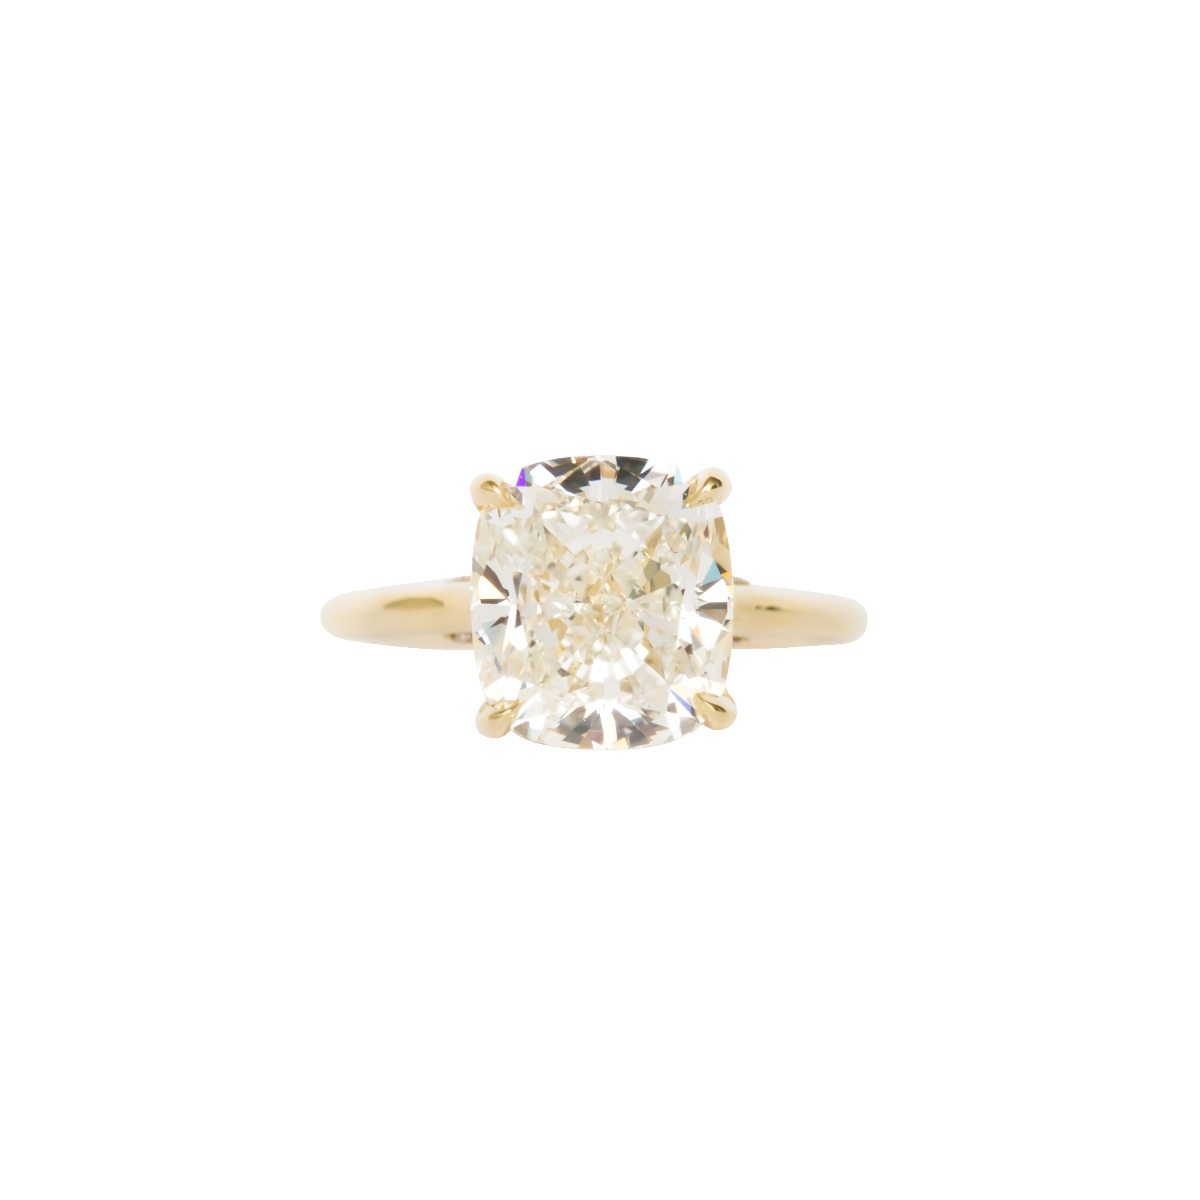 Cushion Cut DBK Classic Solitaire Setting With Diamond Basket & Bridge In 18k Yellow Gold